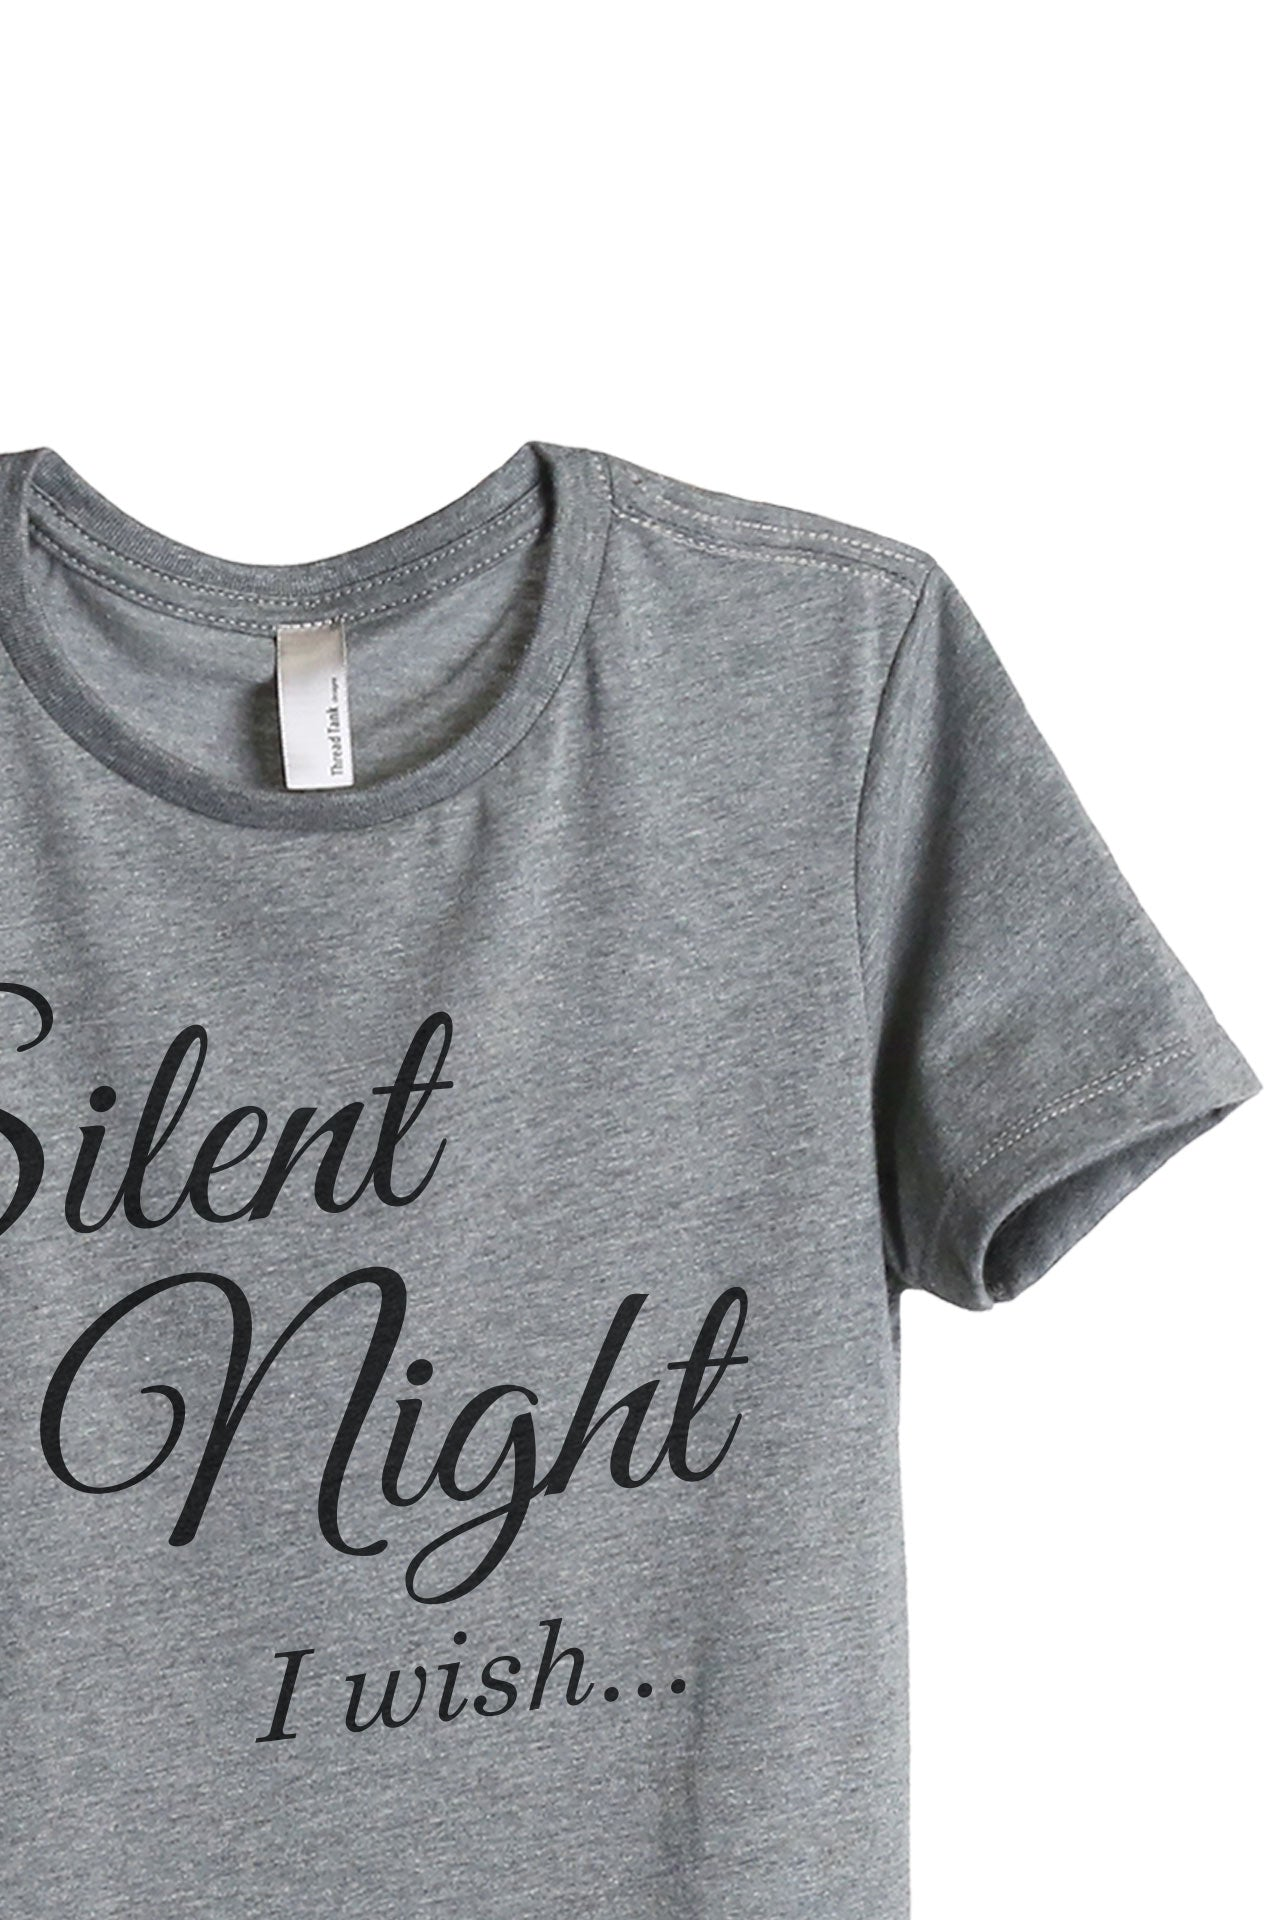 Silent Night I Wish Women's Relaxed Crewneck T-Shirt Top Tee Heather Grey